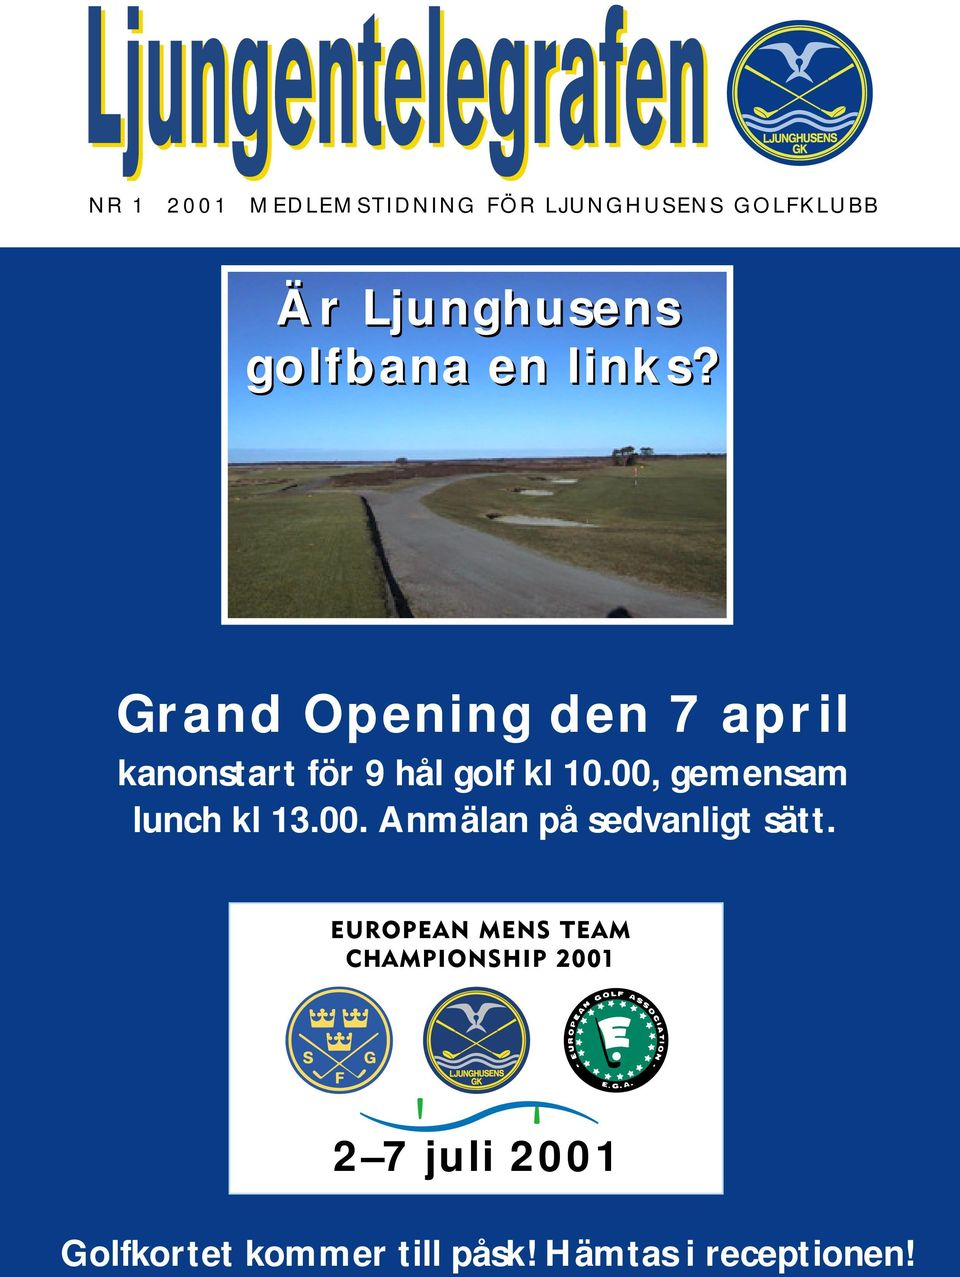 Grand Opening den 7 april kanonstart för 9 hål golf kl 10.